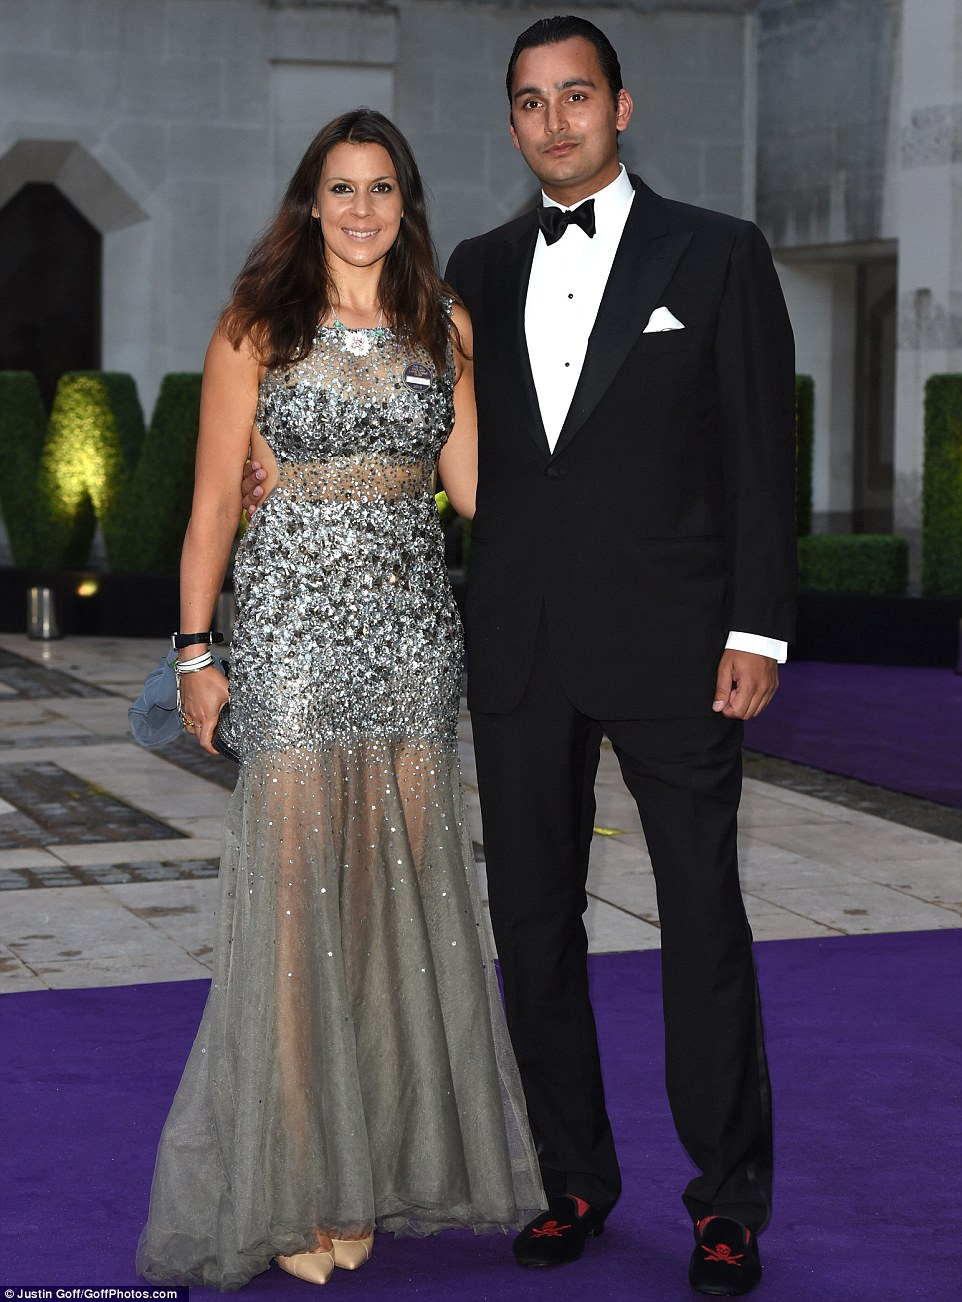 Former Wimbledon champion Marion Bartoli also attended the star-studded event, dressed in a sequin-embossed floor-length silver gown